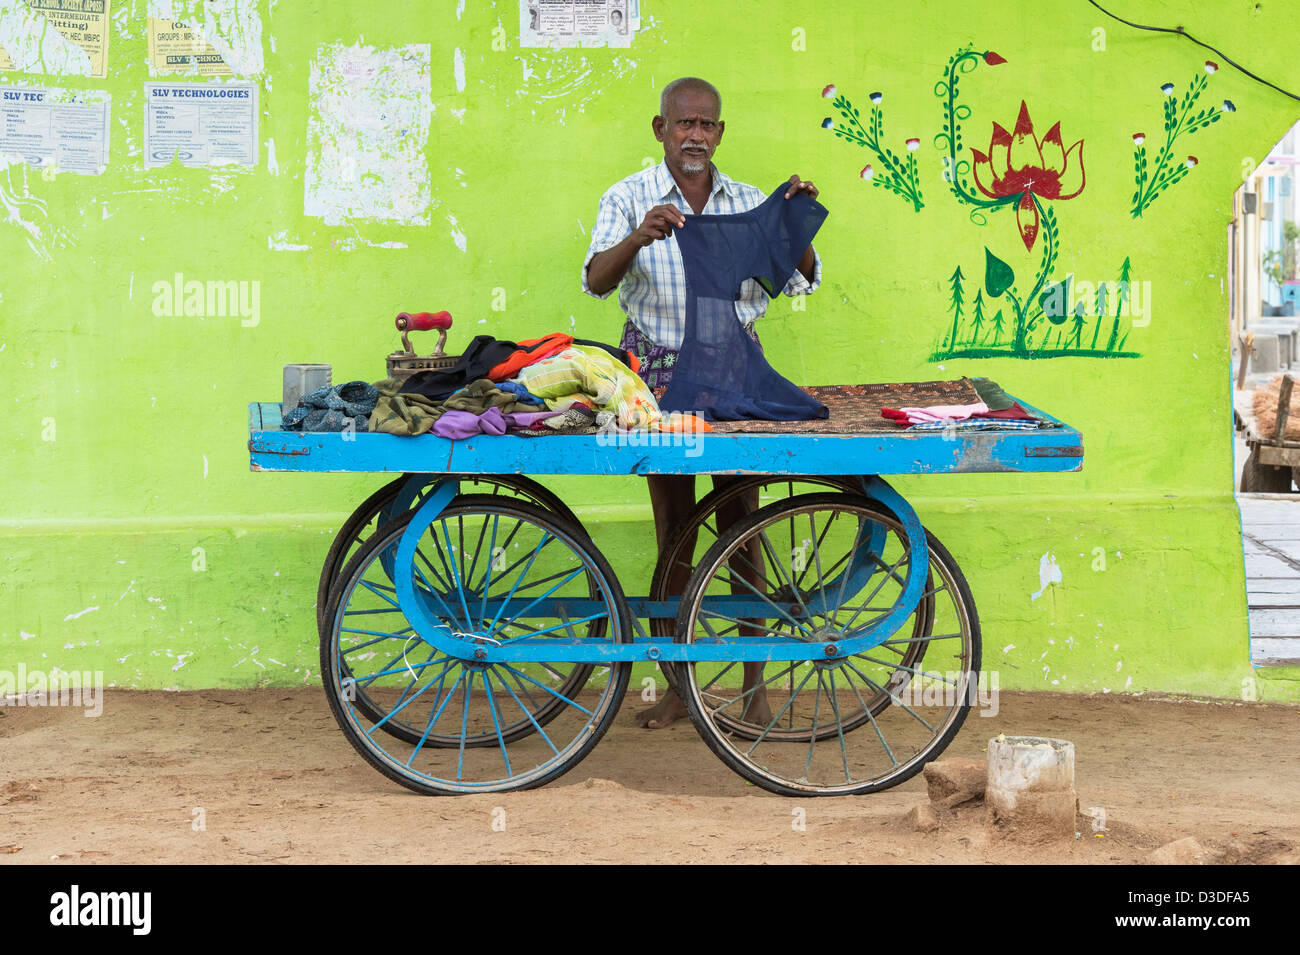 Traditional Indian street laundry man (dhobi) ironing washed clothes on a cart. Andhra Pradesh, India - Stock Image